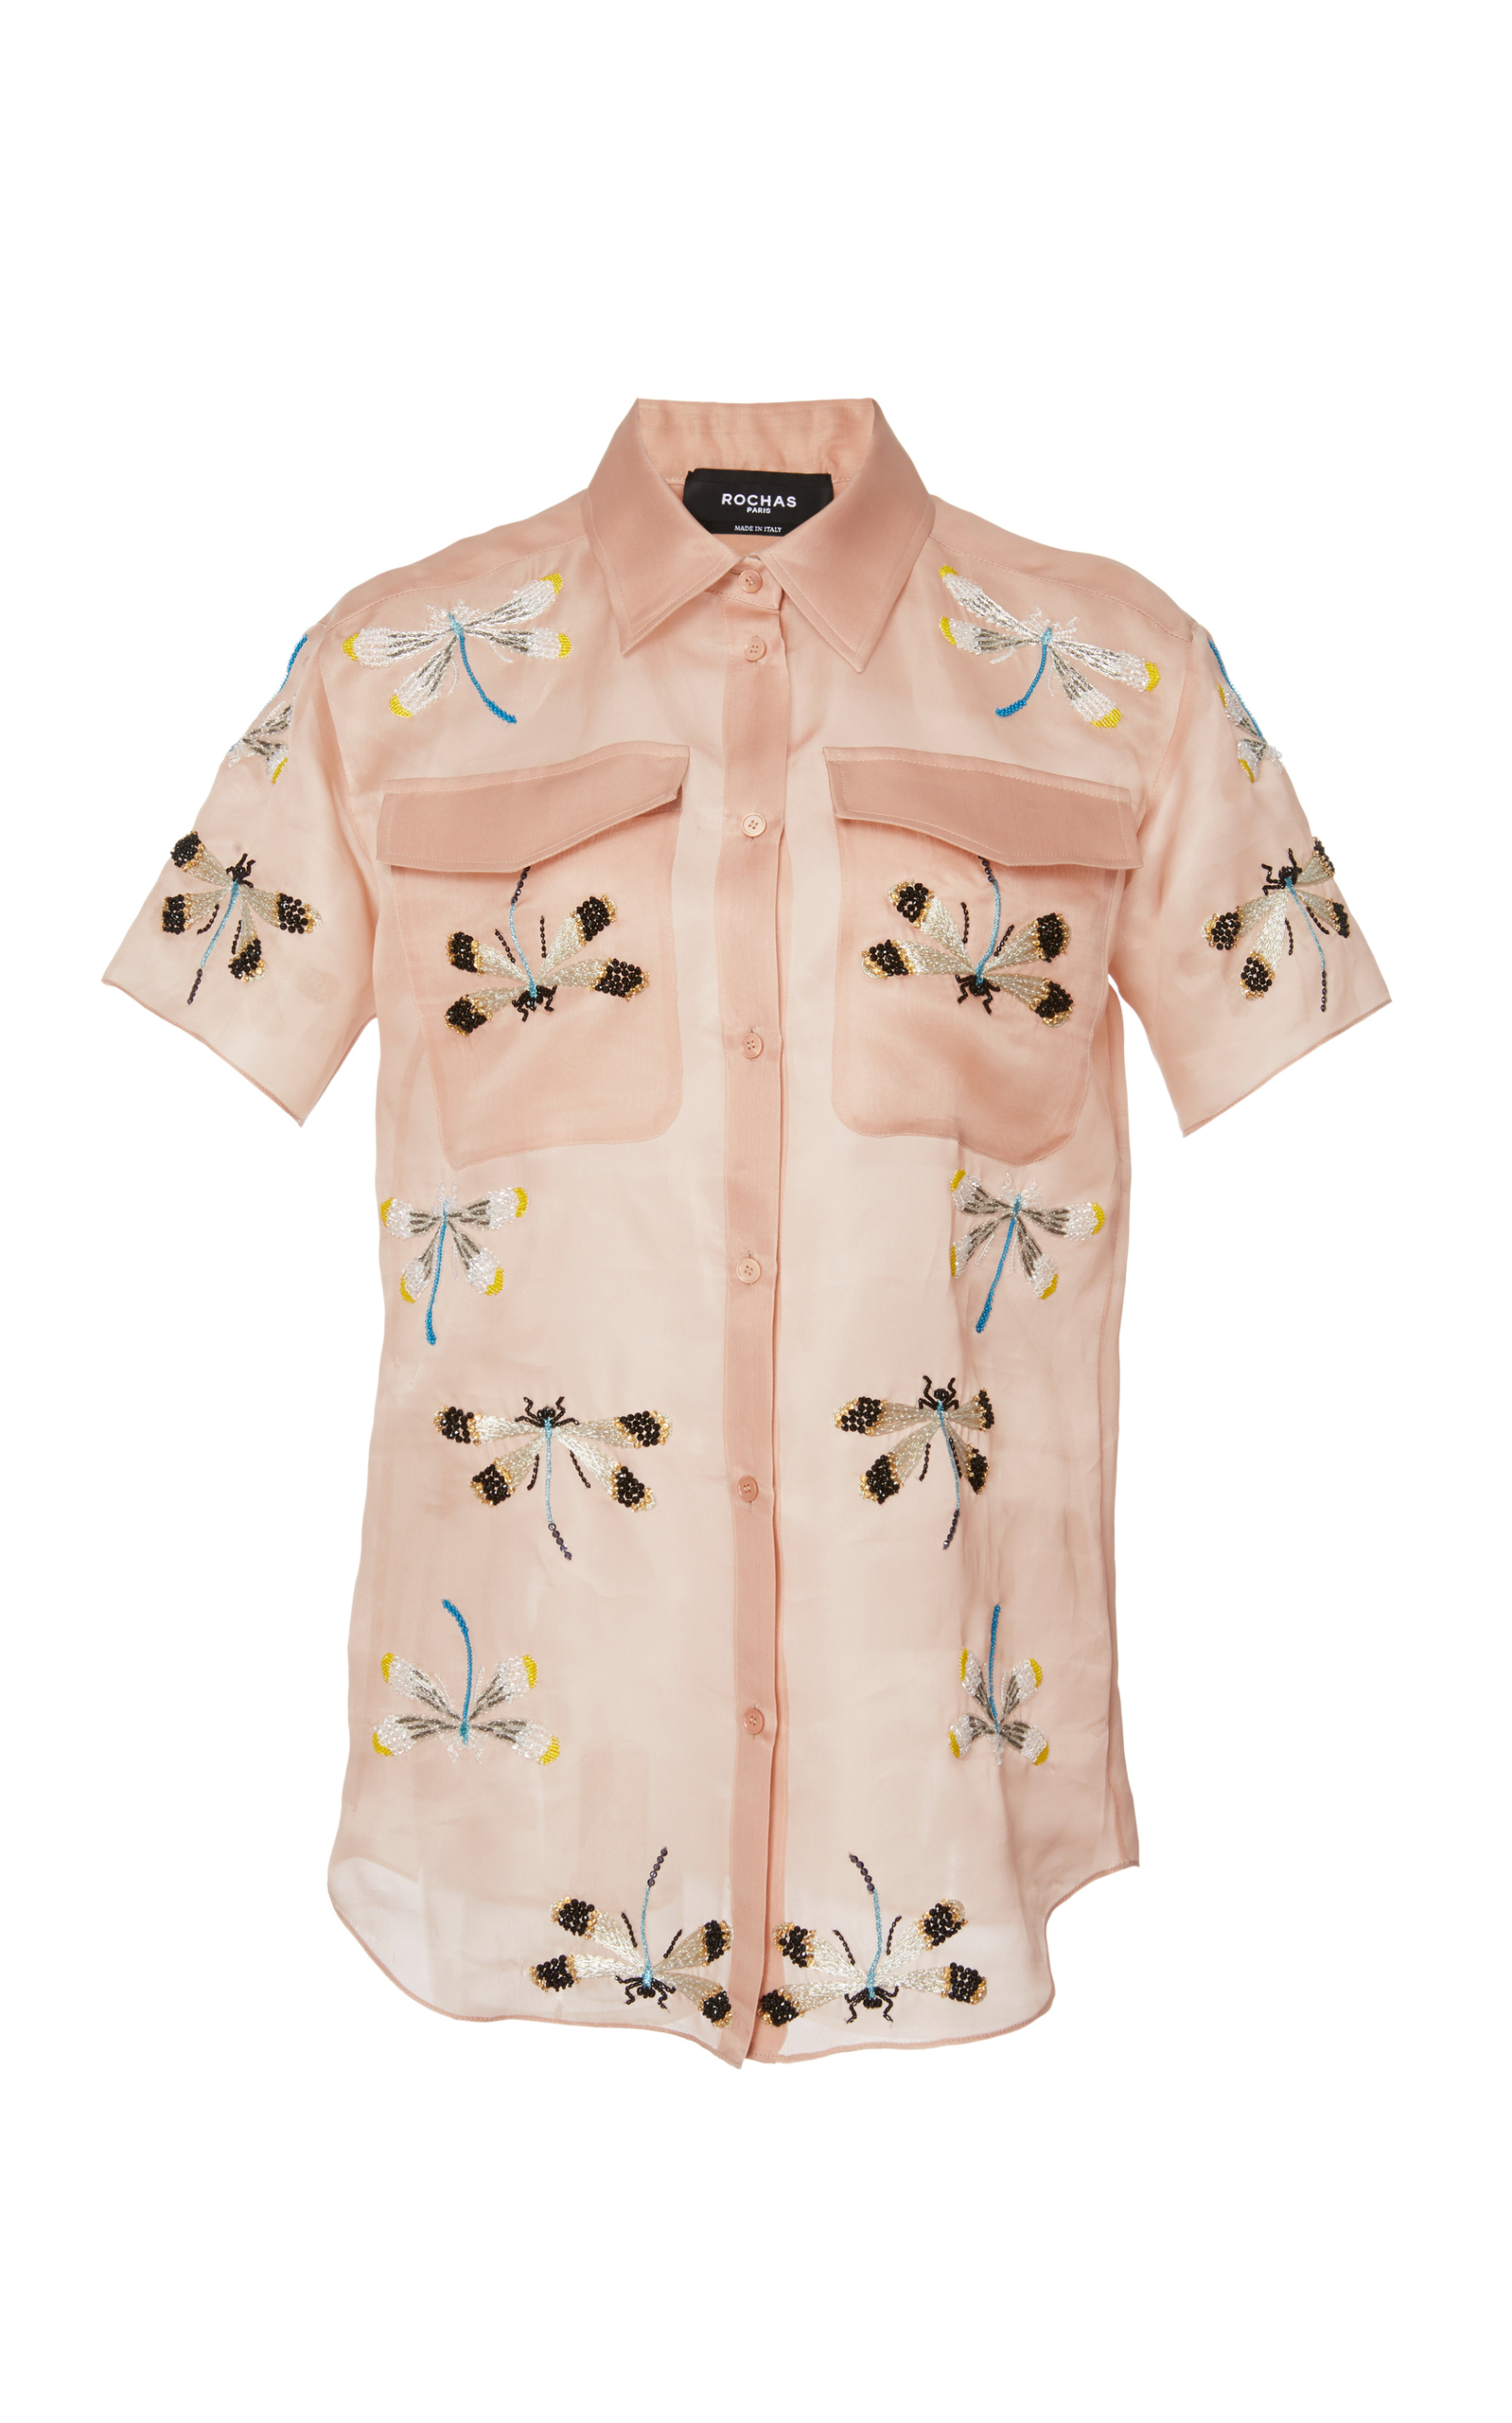 embroidered dragonfly shirt - Pink & Purple Rochas Purchase Cheap Online Outlet 100% Guaranteed Free Shipping Manchester Great Sale Clearance For Cheap Largest Supplier Cheap Online VUf6FHl